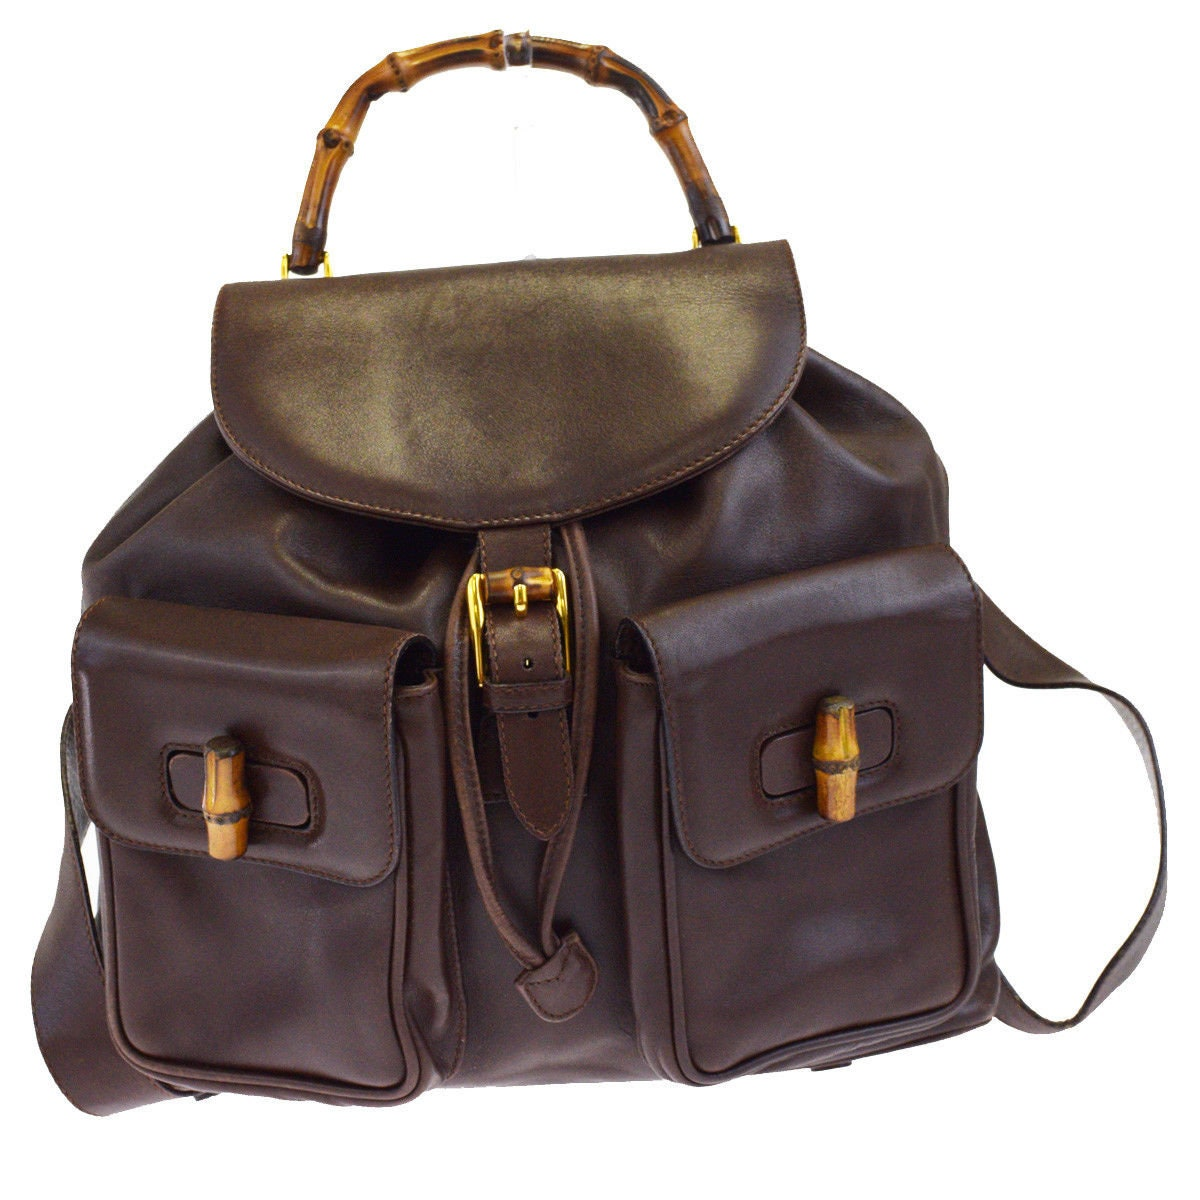 0c190f9b6b7 Authentic GUCCI Brown Leather Bamboo Handle Backpack Bag